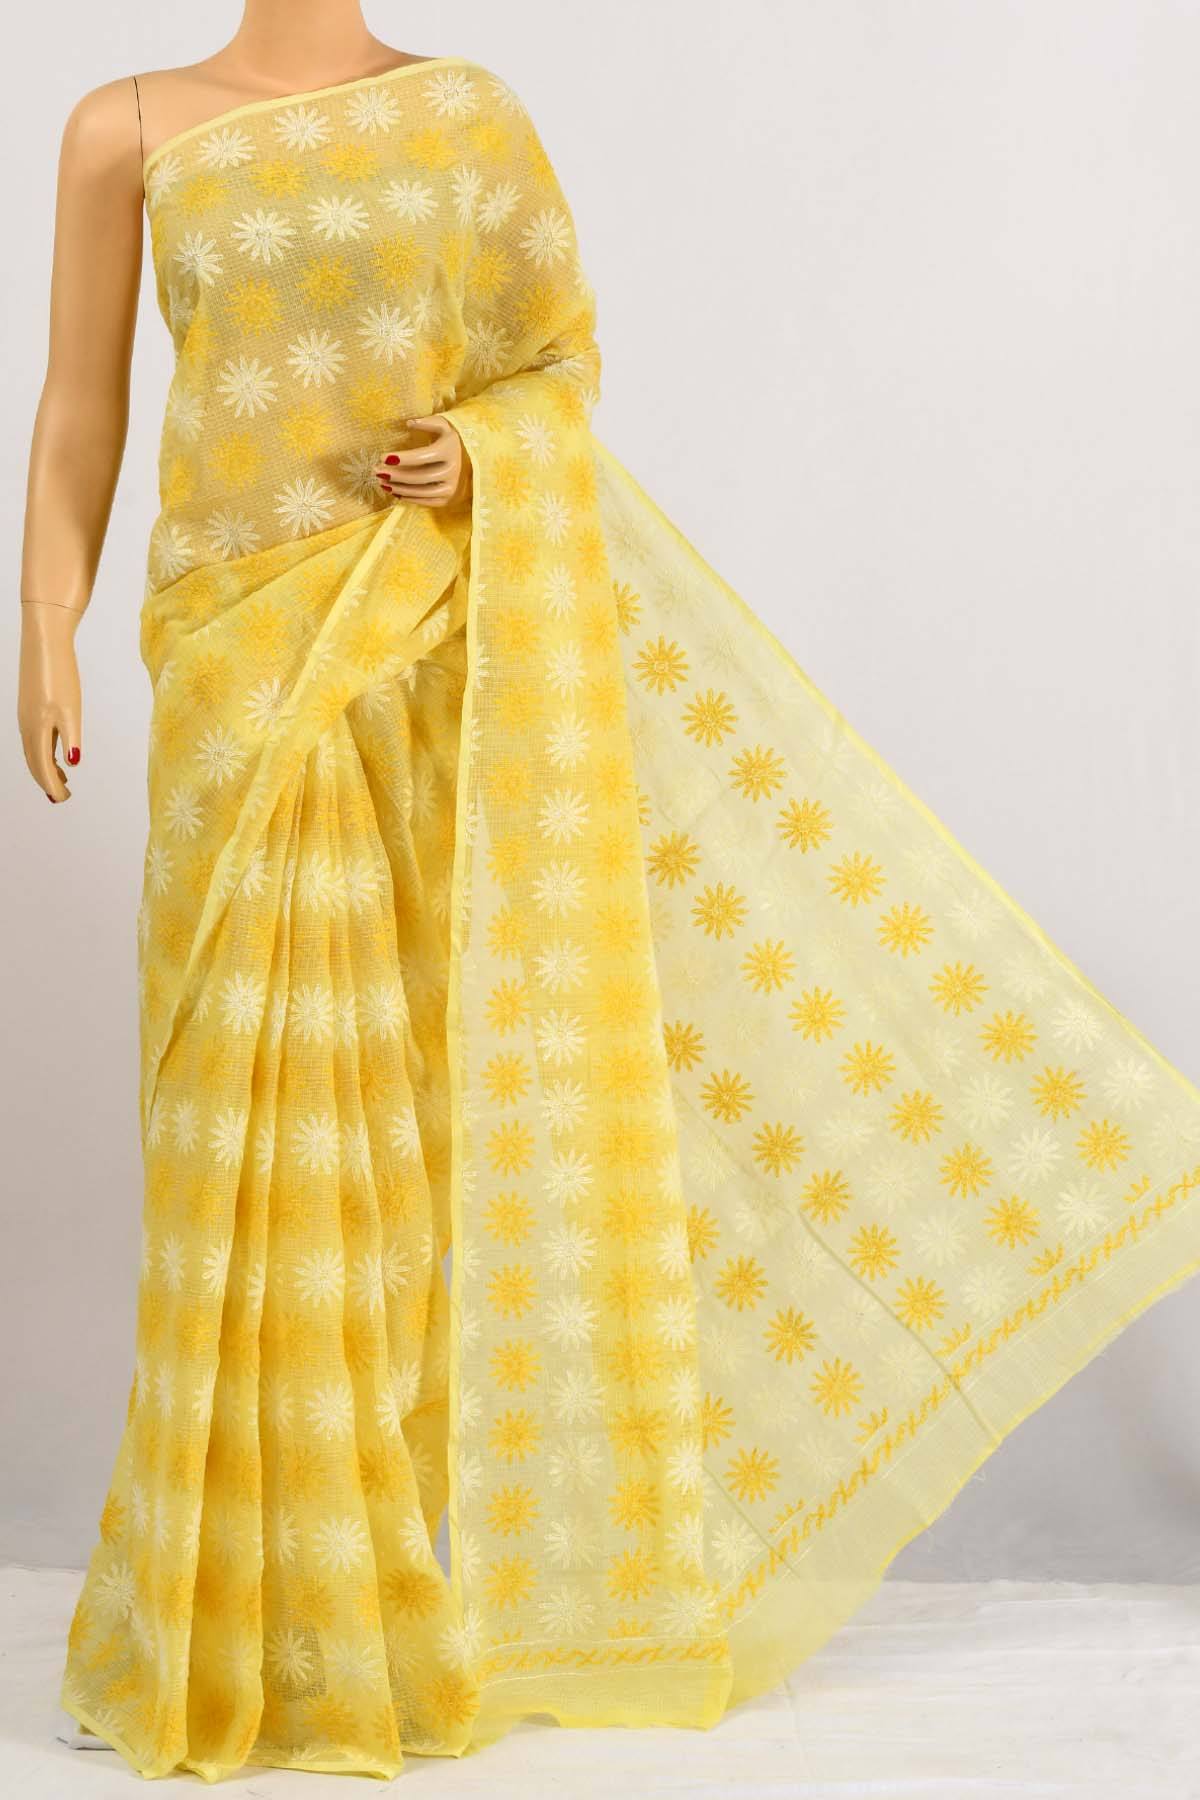 Yellow Color Kota Cotton Multi Thread Tepchi Work Hand Embroidered Lucknowi Chikankari Saree (Without Blouse) SM250671